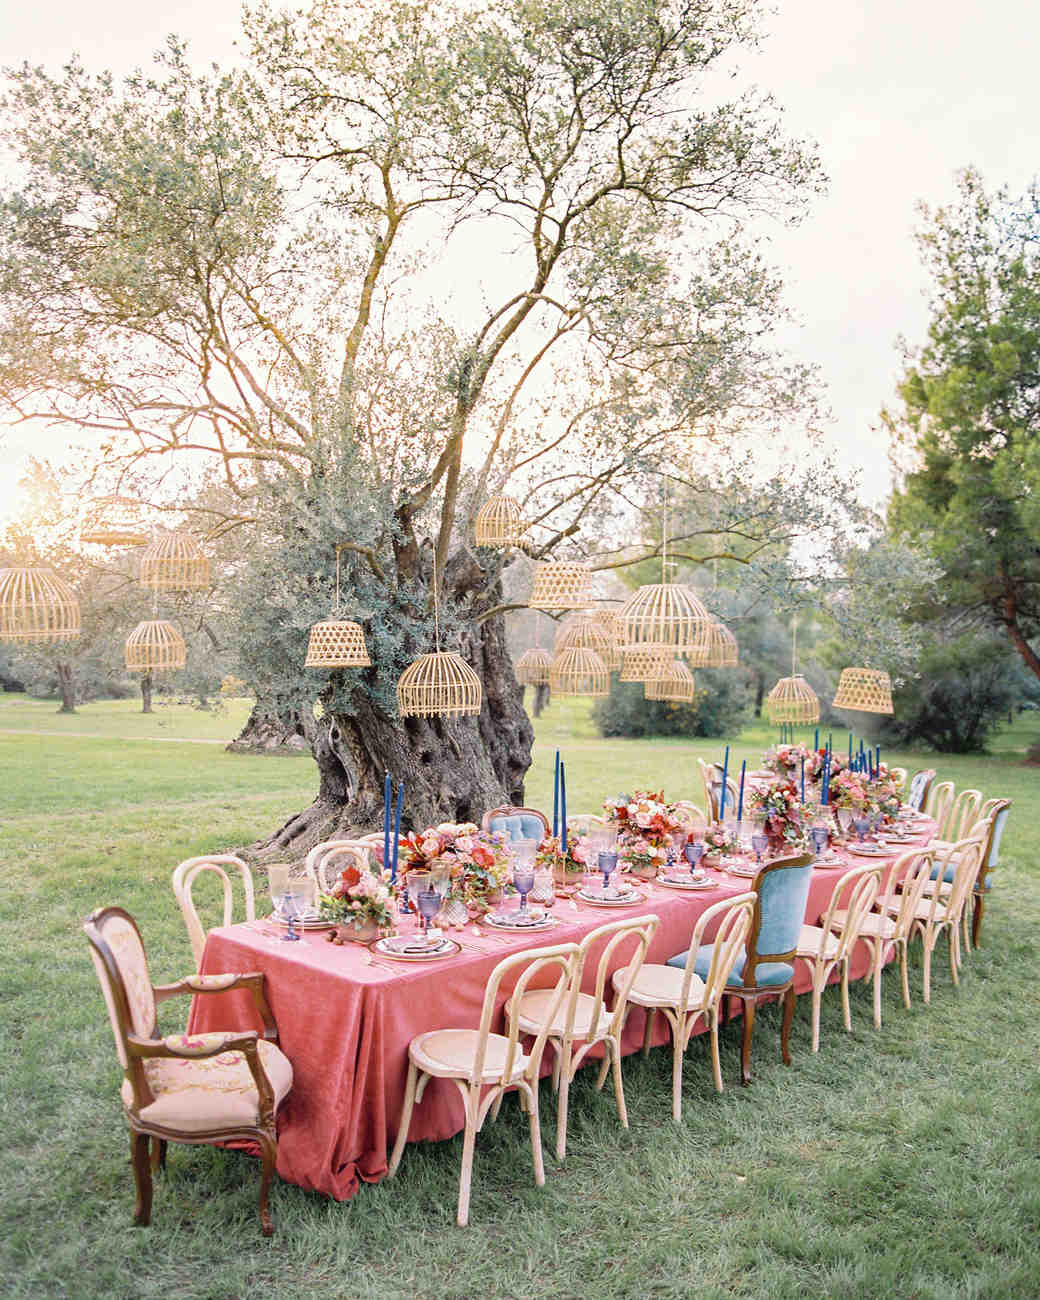 Summer Wedding Ideas You'll Want To Steal